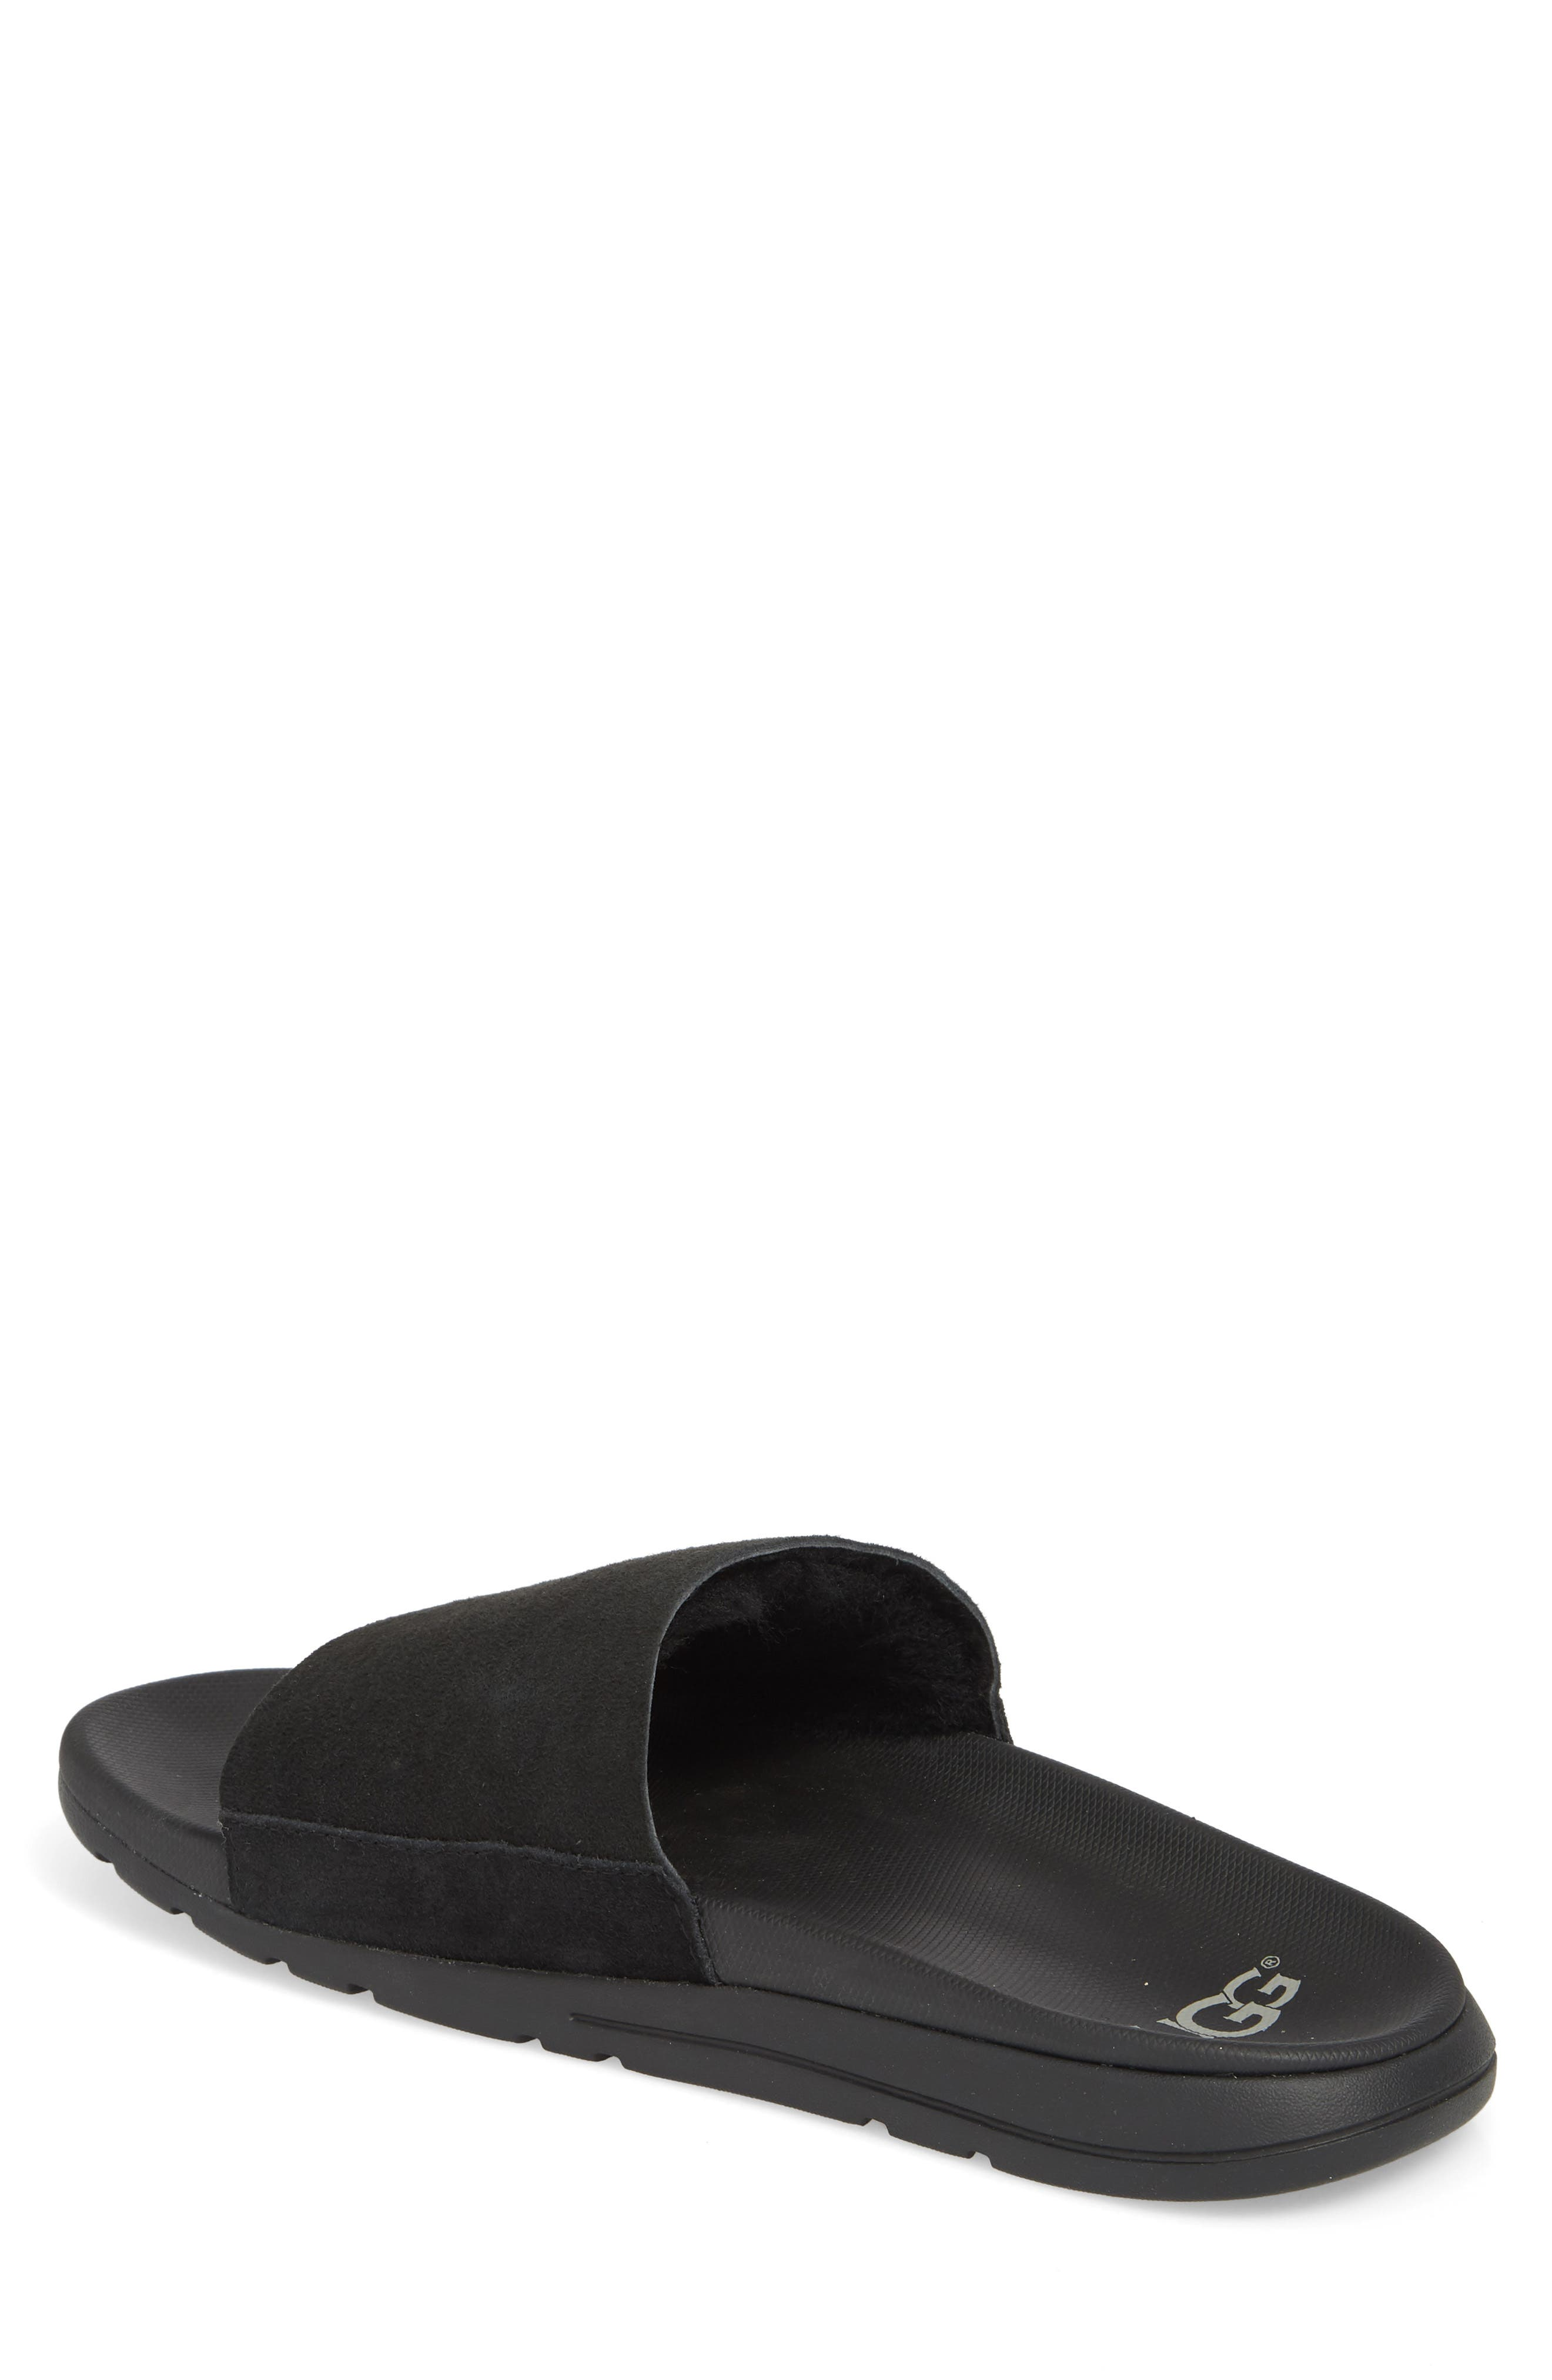 Xavier TF Genuine Shearling Slide Sandal,                             Alternate thumbnail 2, color,                             BLACK